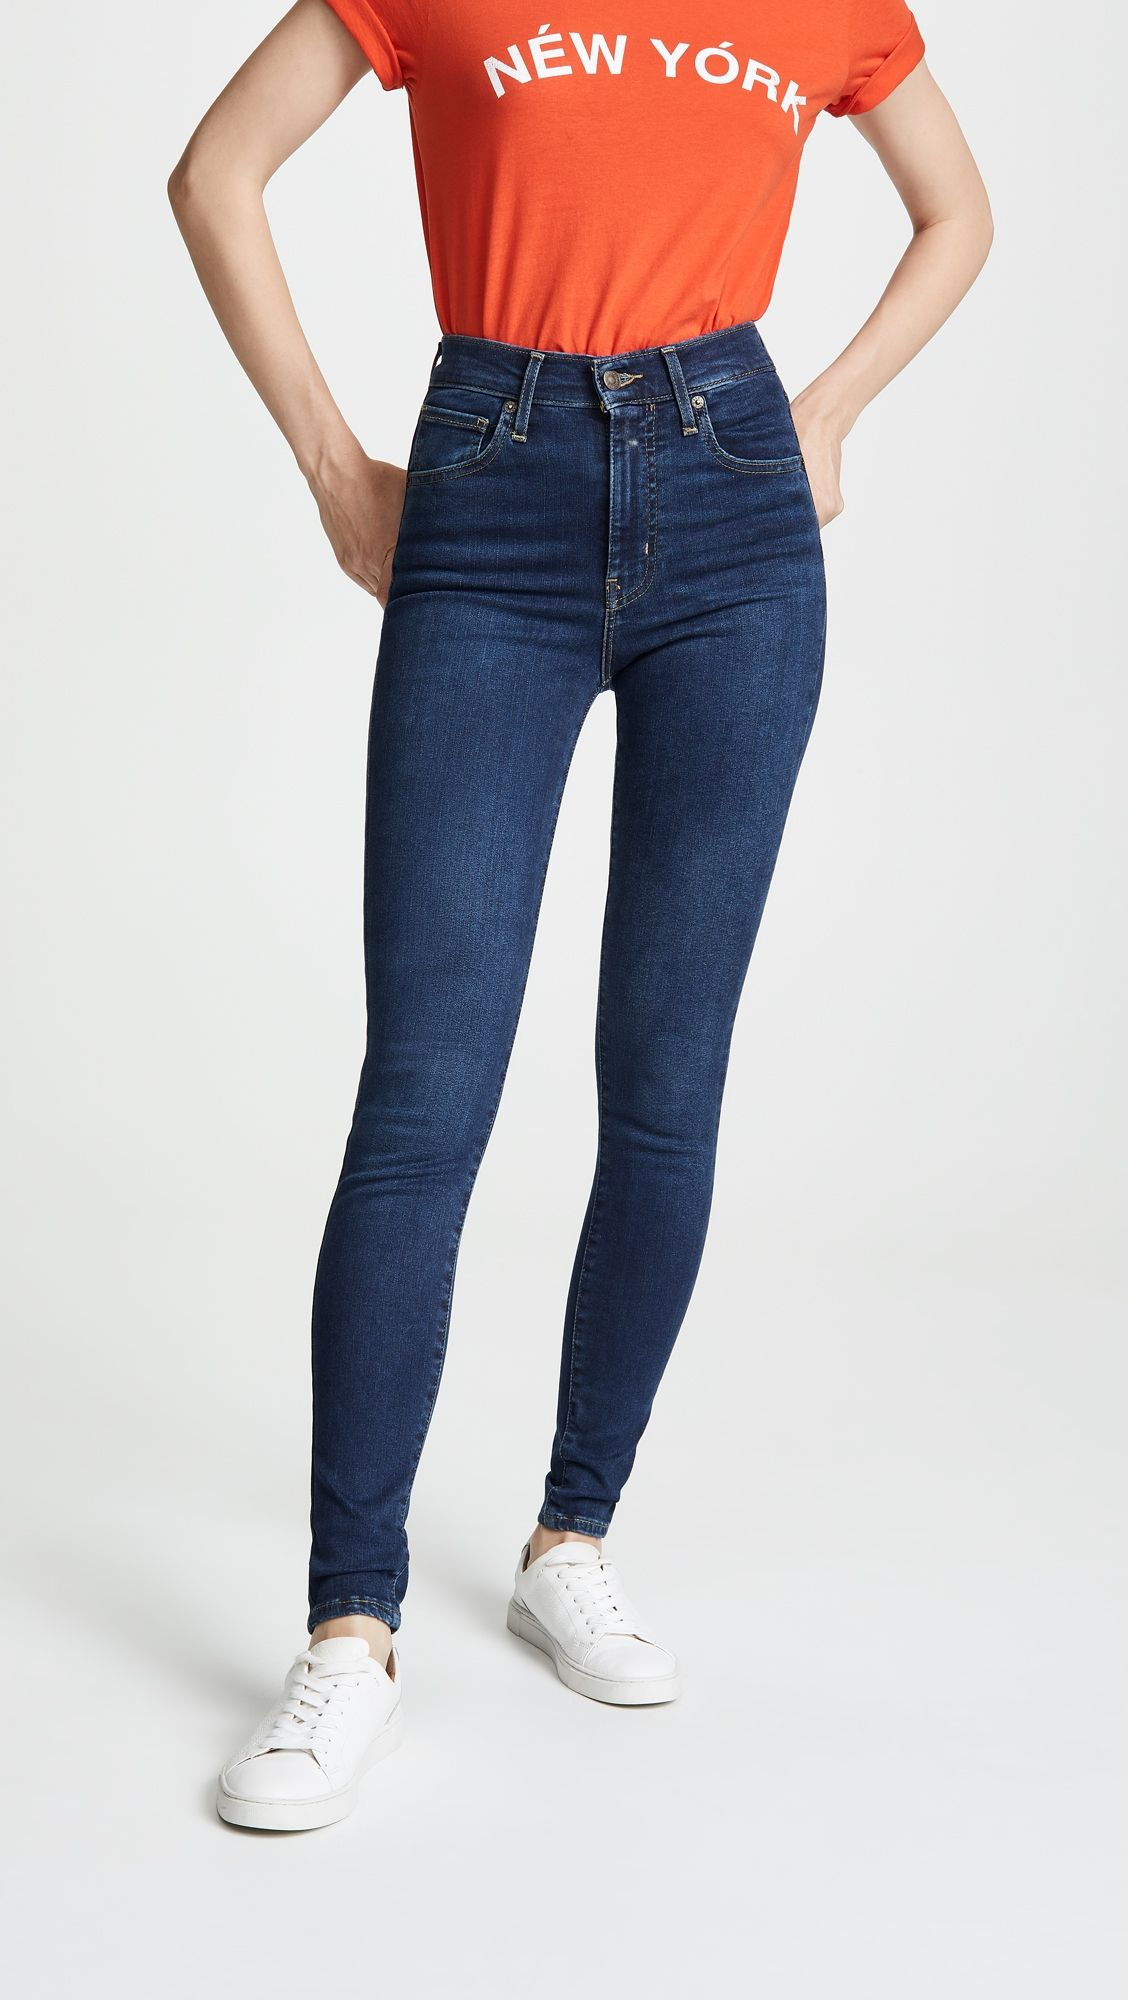 Levi S Mile High Super Skinny Jeans Super Skinny Jeans Jeans Pant For Girl Jeans Outfit Casual